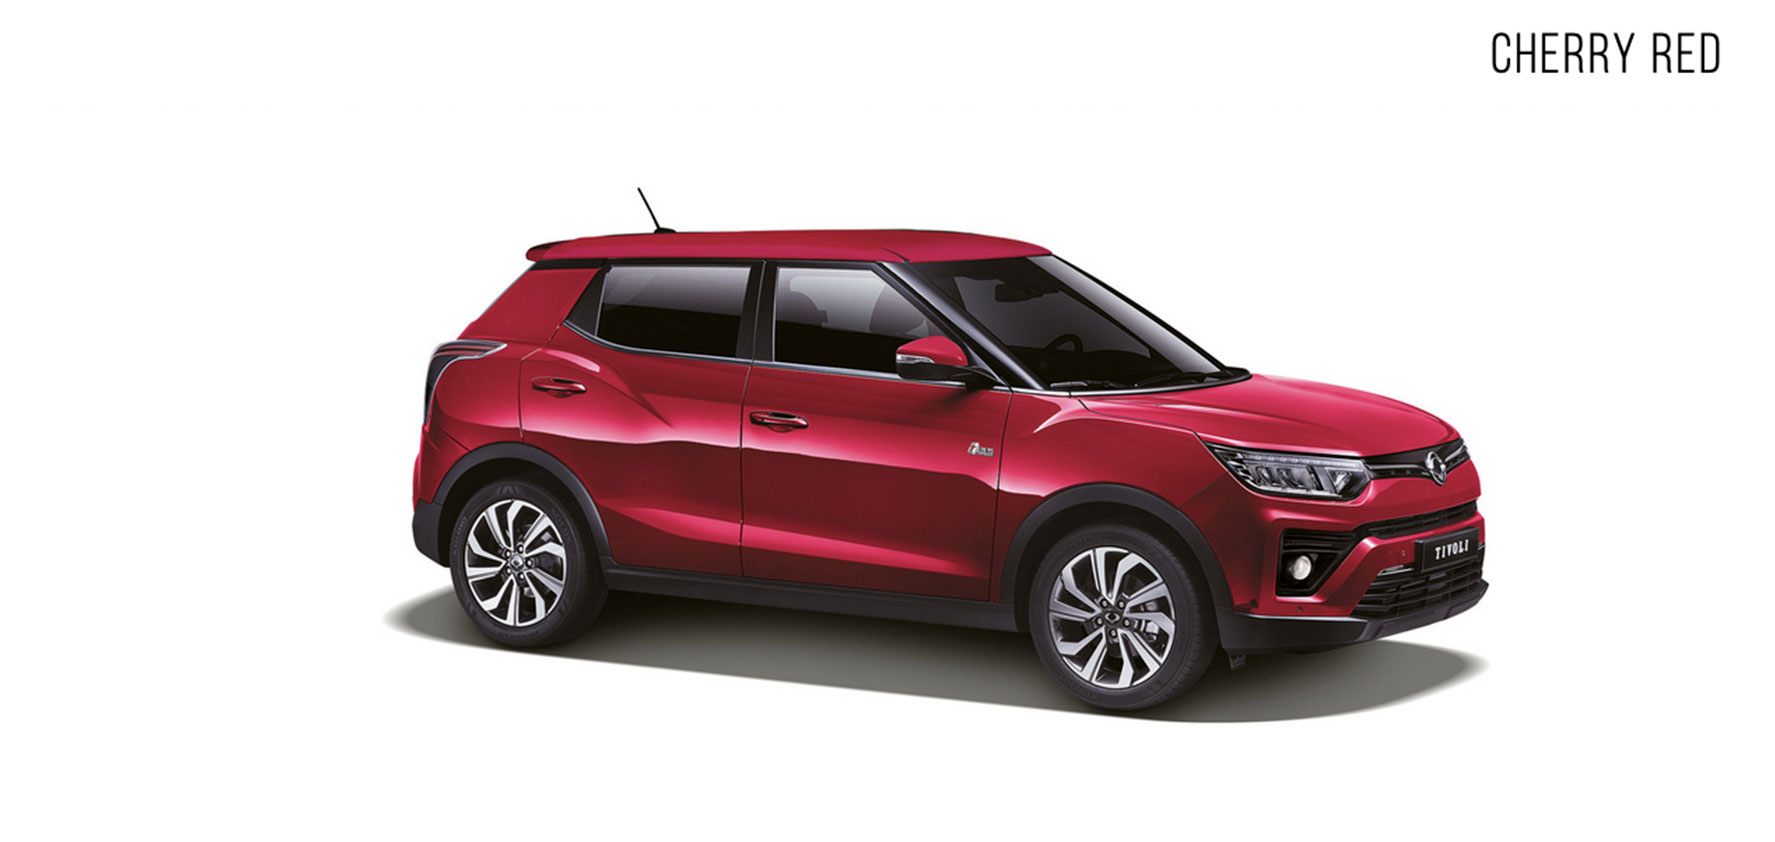 5-cherry-red-nuova-tivoli-ssangyong-vercelli